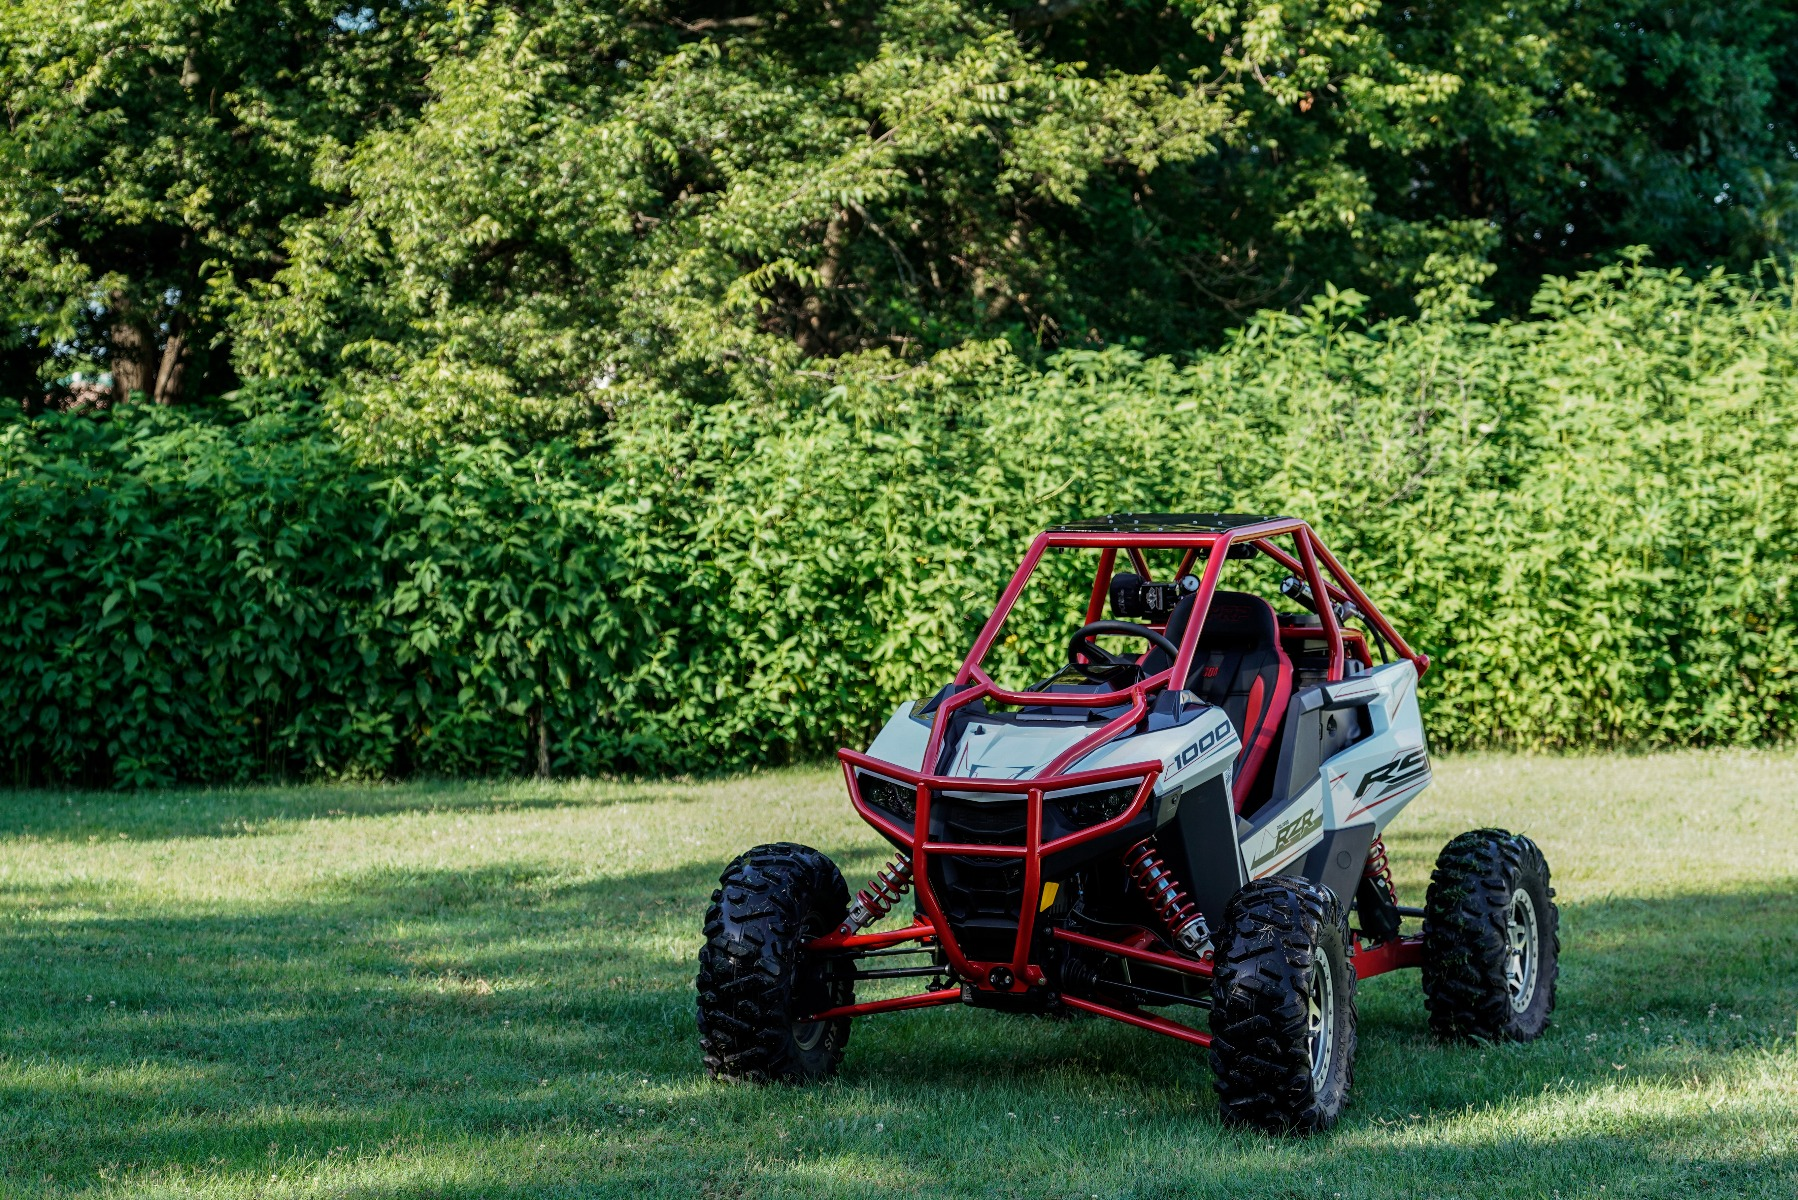 Polaris RZR RS1 Roll Cage in grass Image 3